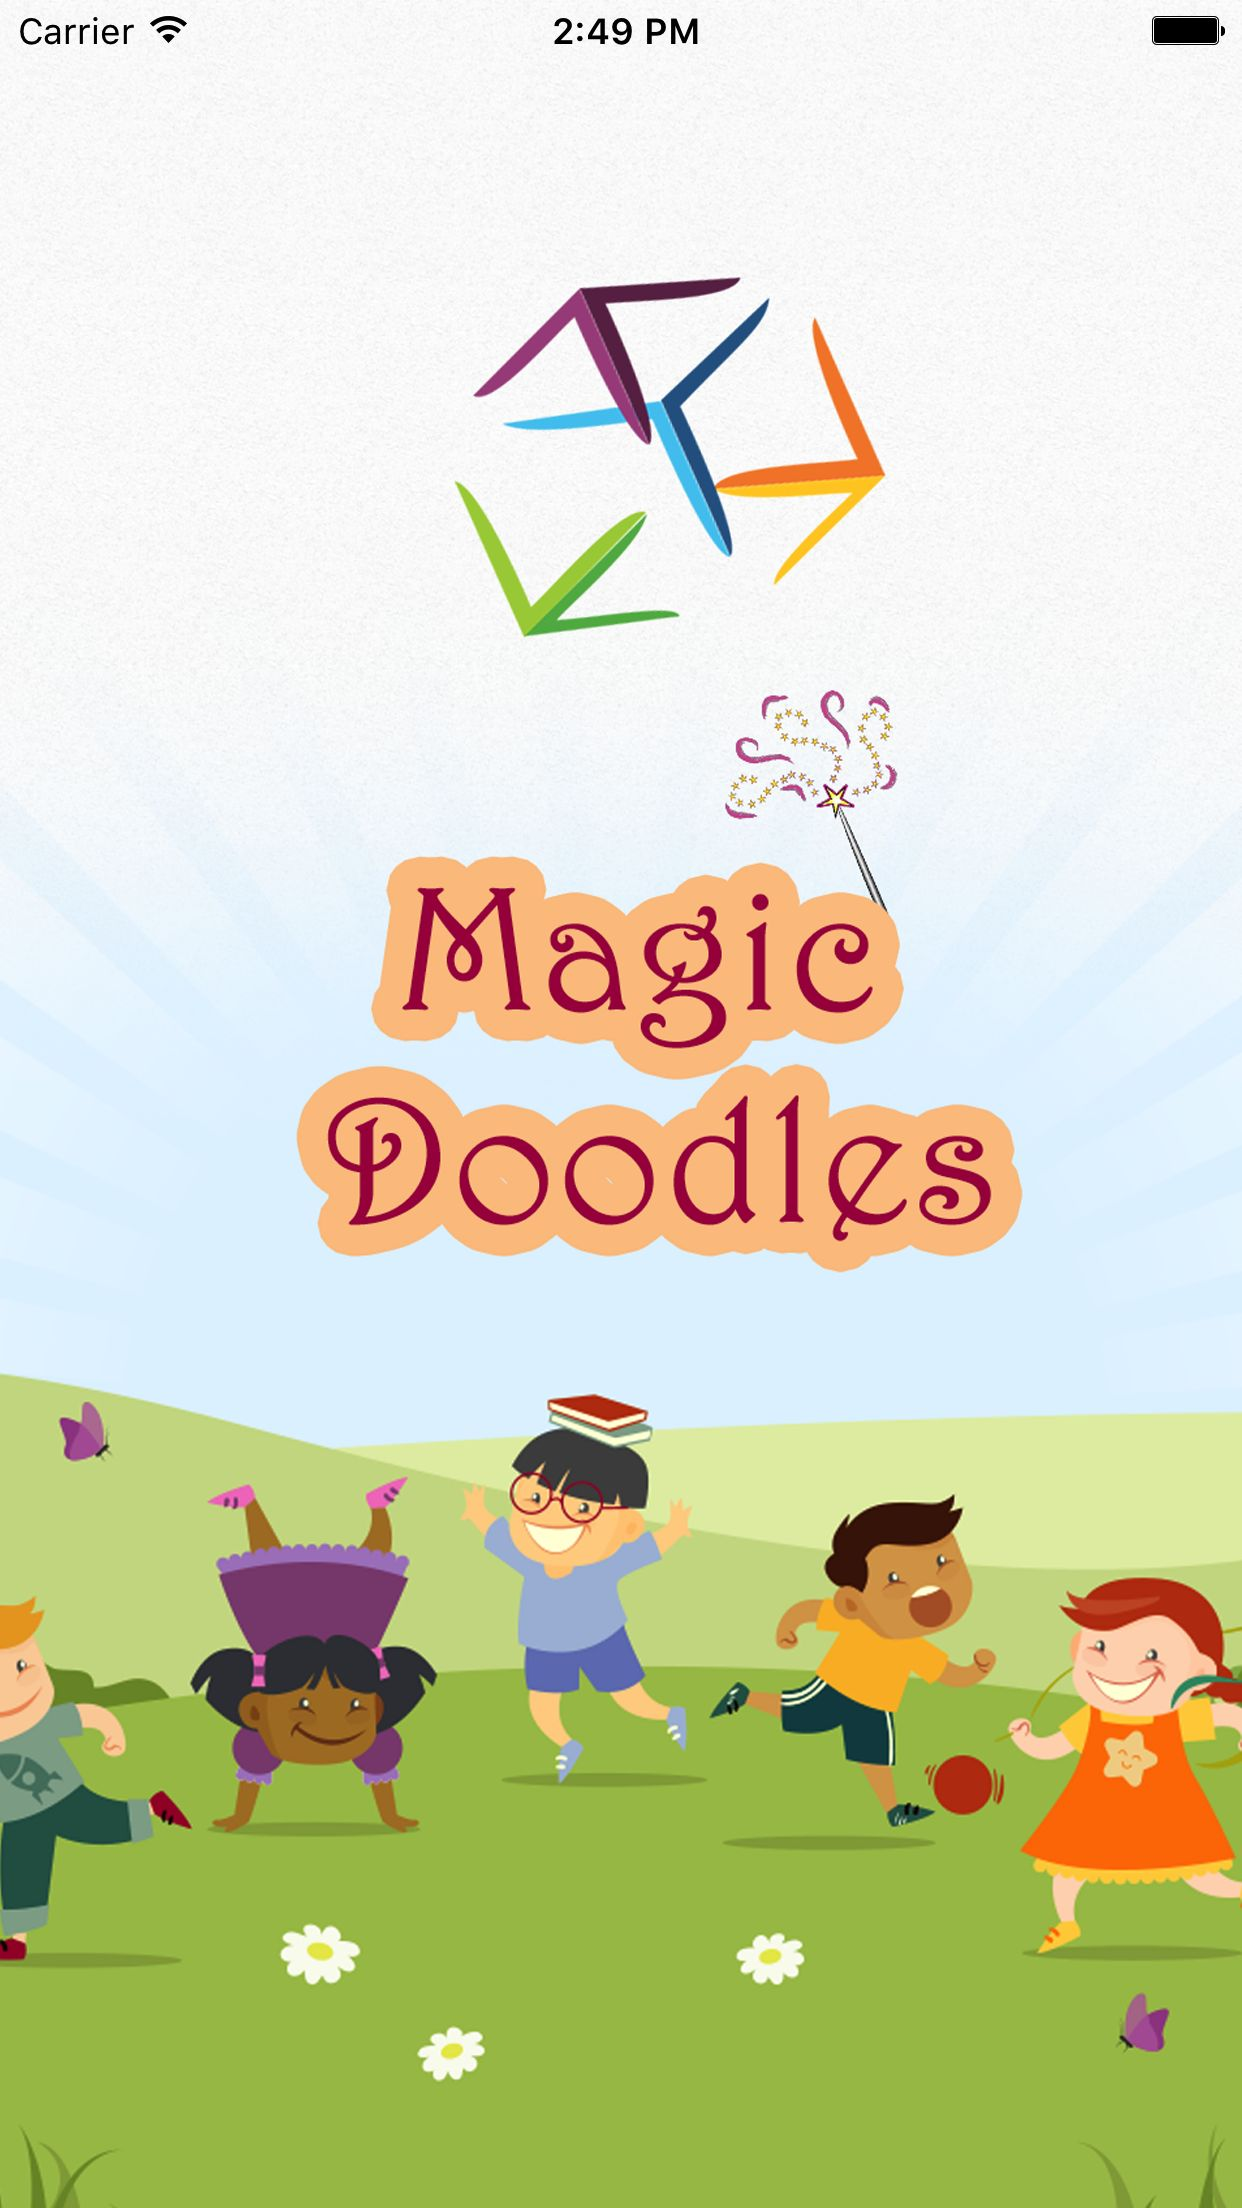 Kids Magic Doodles - Full iOS Xcode Project Screenshot 1